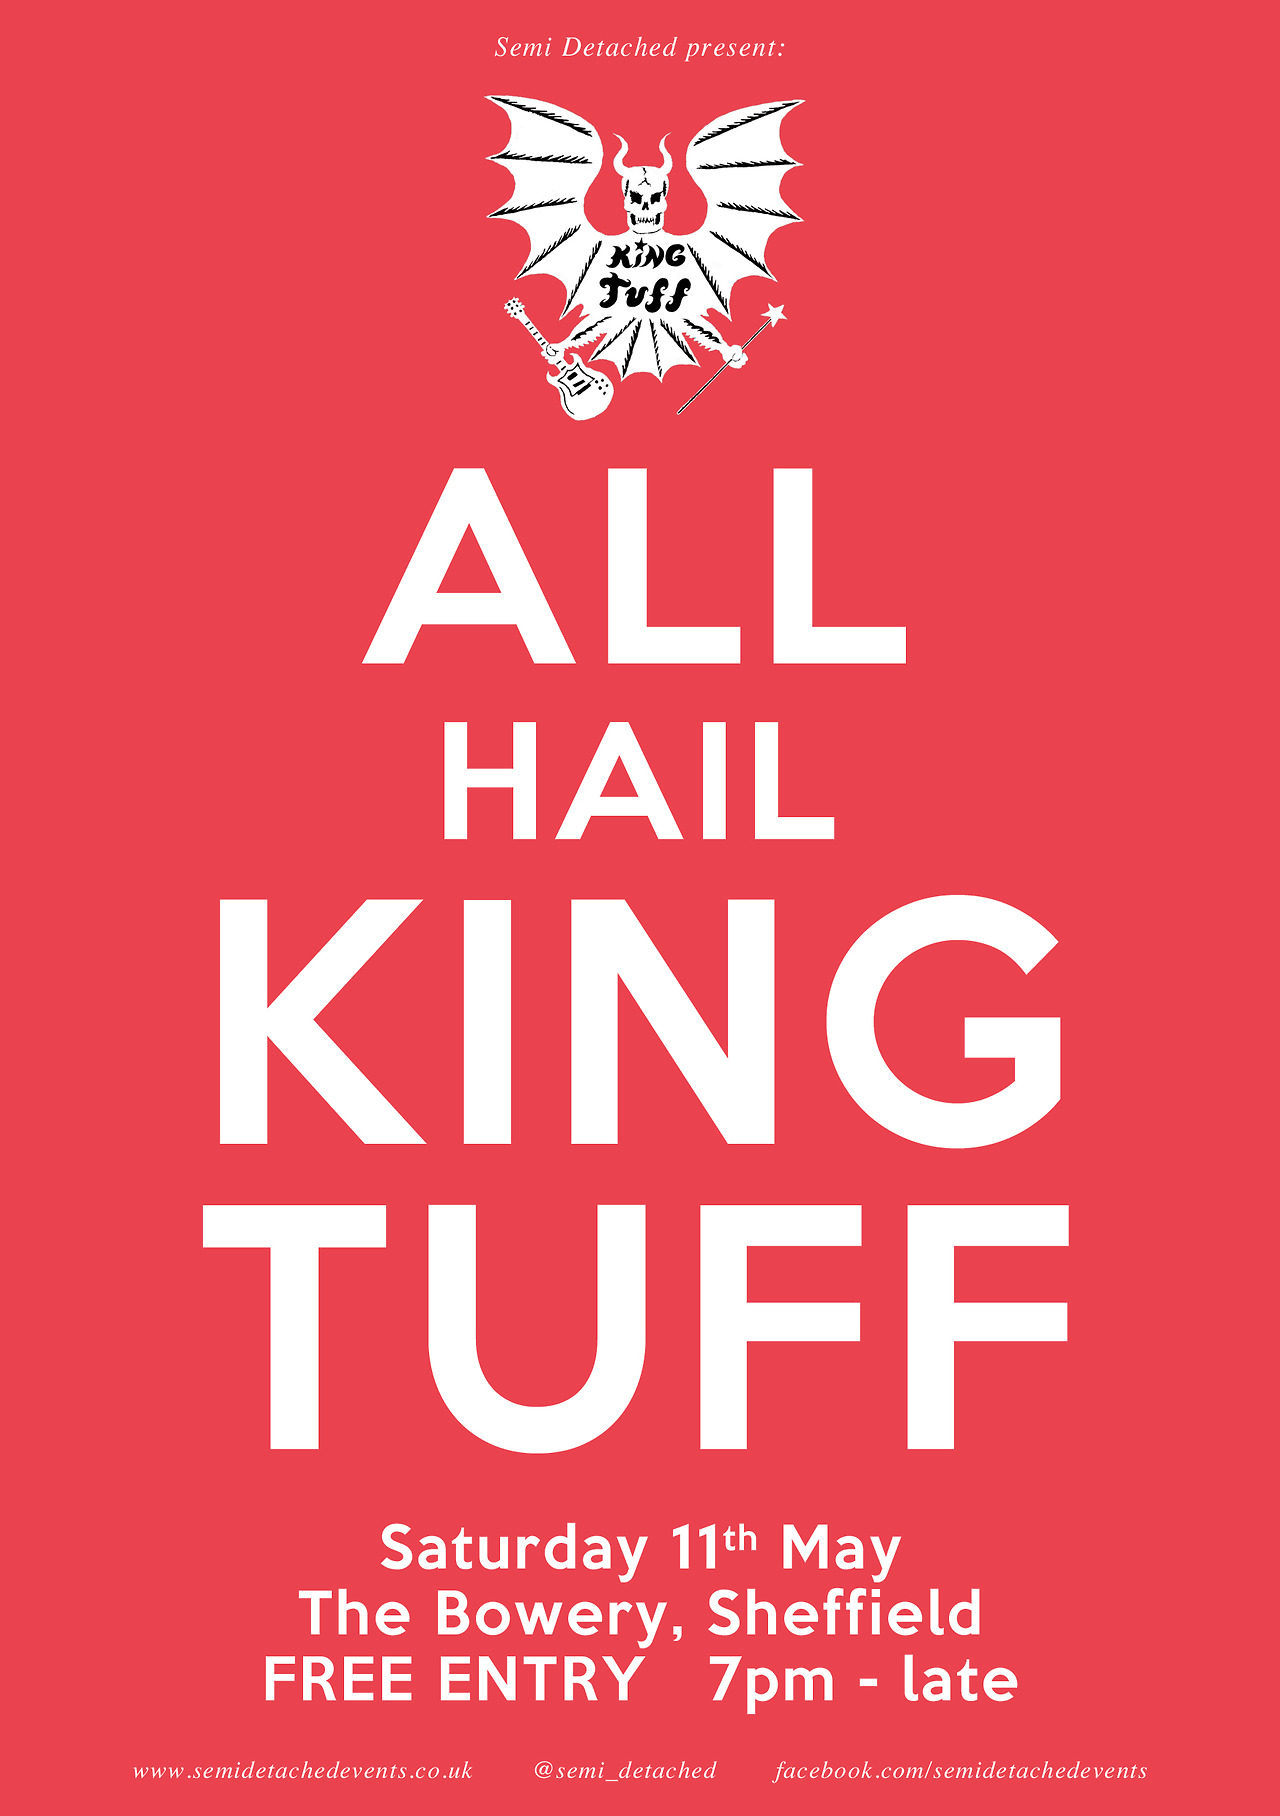 King Tuff + Support + Landslide DJ's The Bowery, Division Street, Sheffield Saturday 11th May 2013 7:00pm - late FREE ENTRY 18+ More details can be found here. facebook.com/kingtuffy facebook.com/semidetachedevents